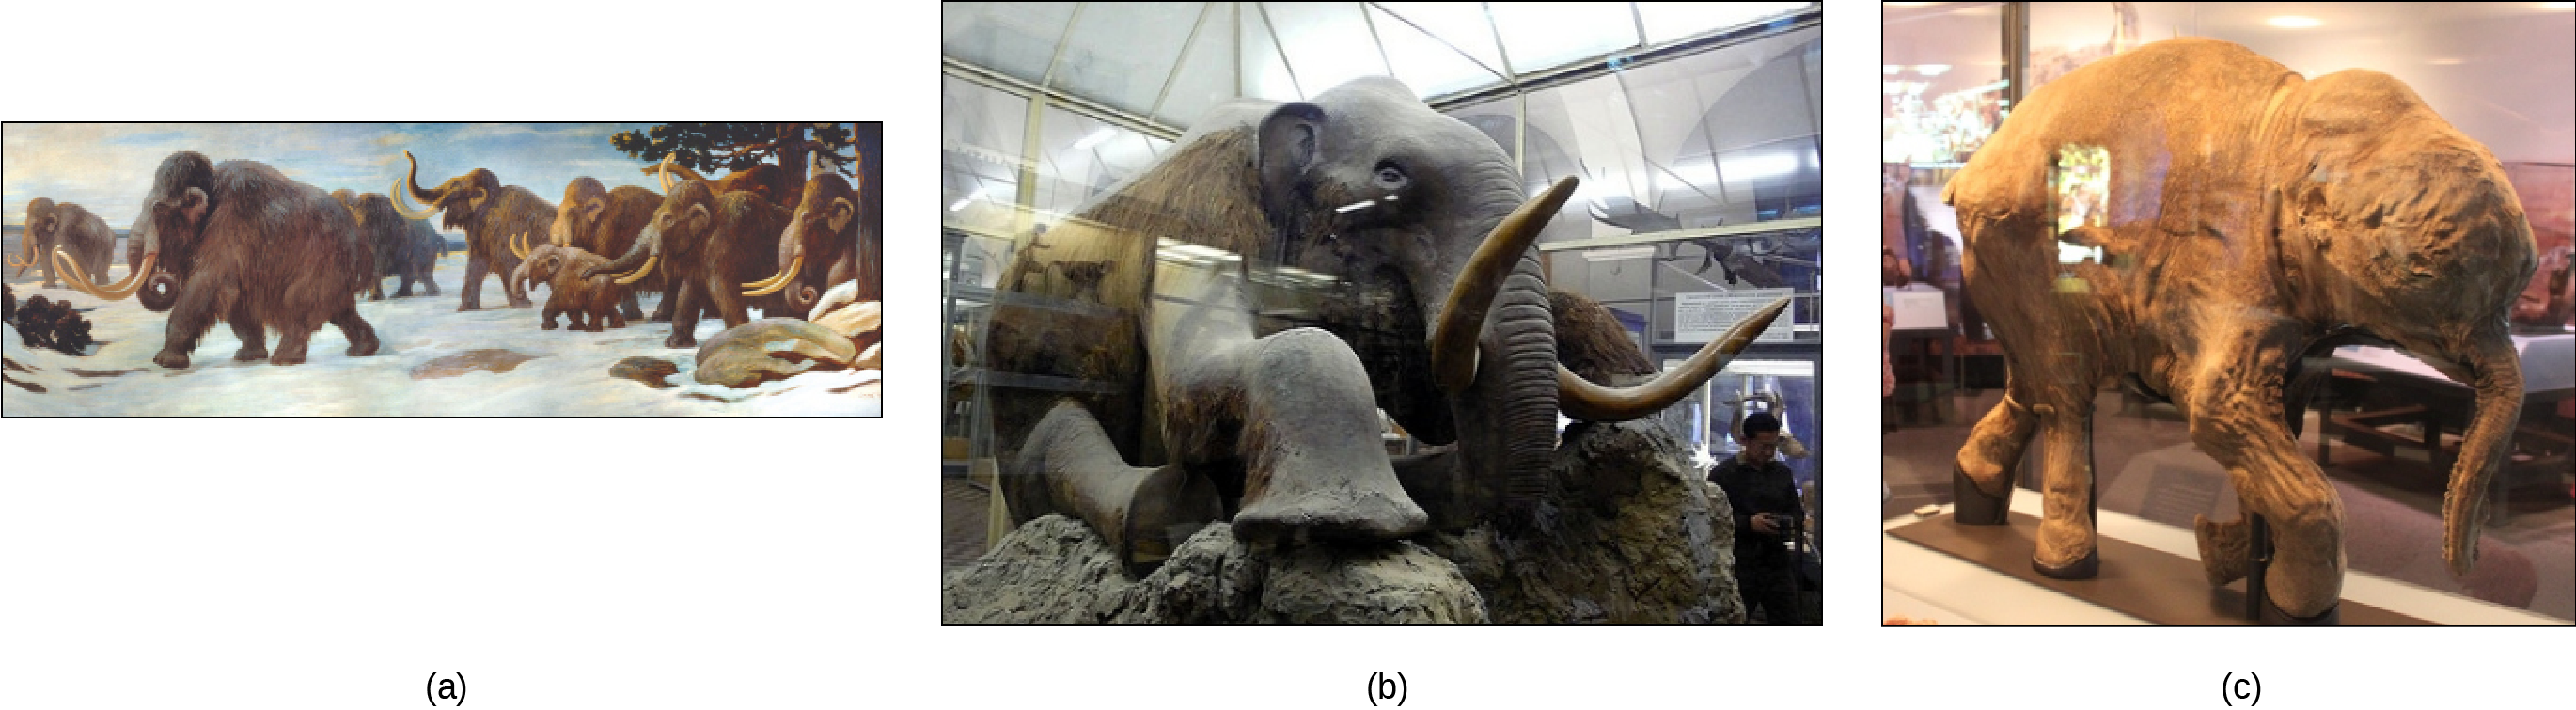 Photo (a) shows a painting of mammoths walking in the snow. Photo (b) shows a stuffed mammoth sitting in a museum display case. Photo (c) shows a mummified baby mammoth, also in a display case.